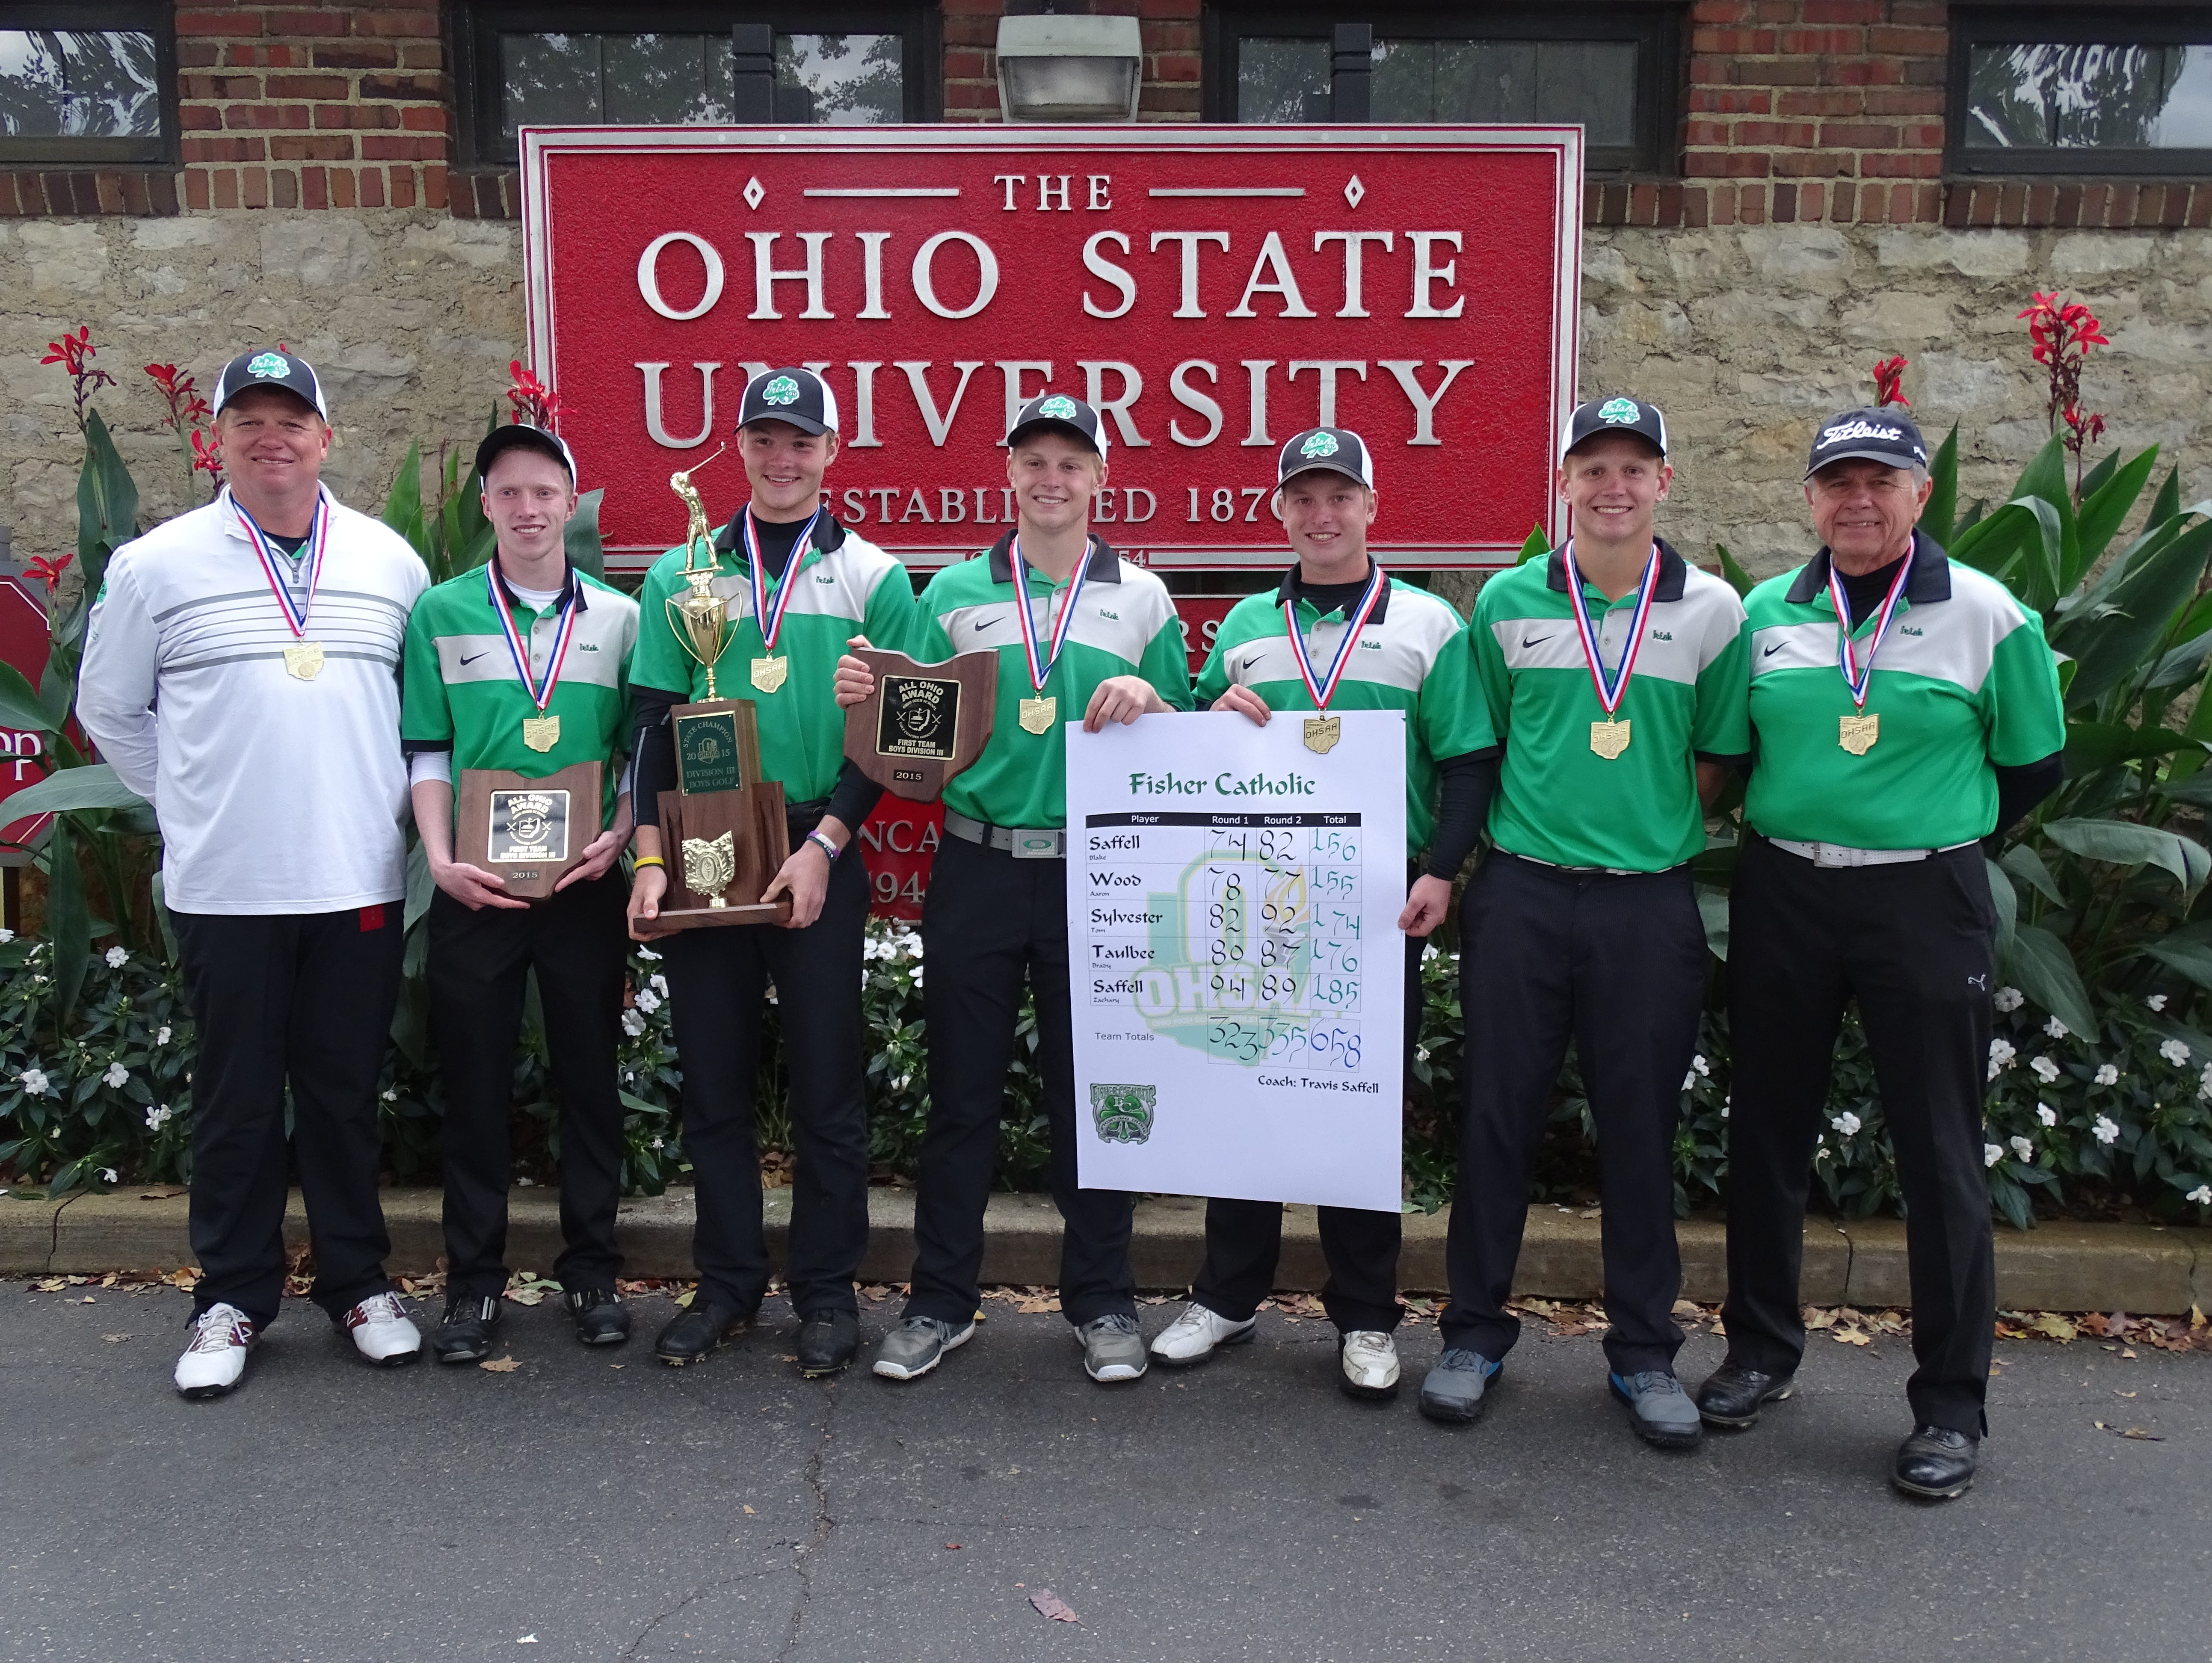 The Fisher Catholic boys golf team won the Division III state championship on Saturday at Ohio State's Scarlet Course. Teams are, from left to right: head coach Travis Saffell, Aaron Wood, Brady Taulbee, Blake Saffell, Tom Sylvester, Zach Saffell and assistant coach Larry Saffell.